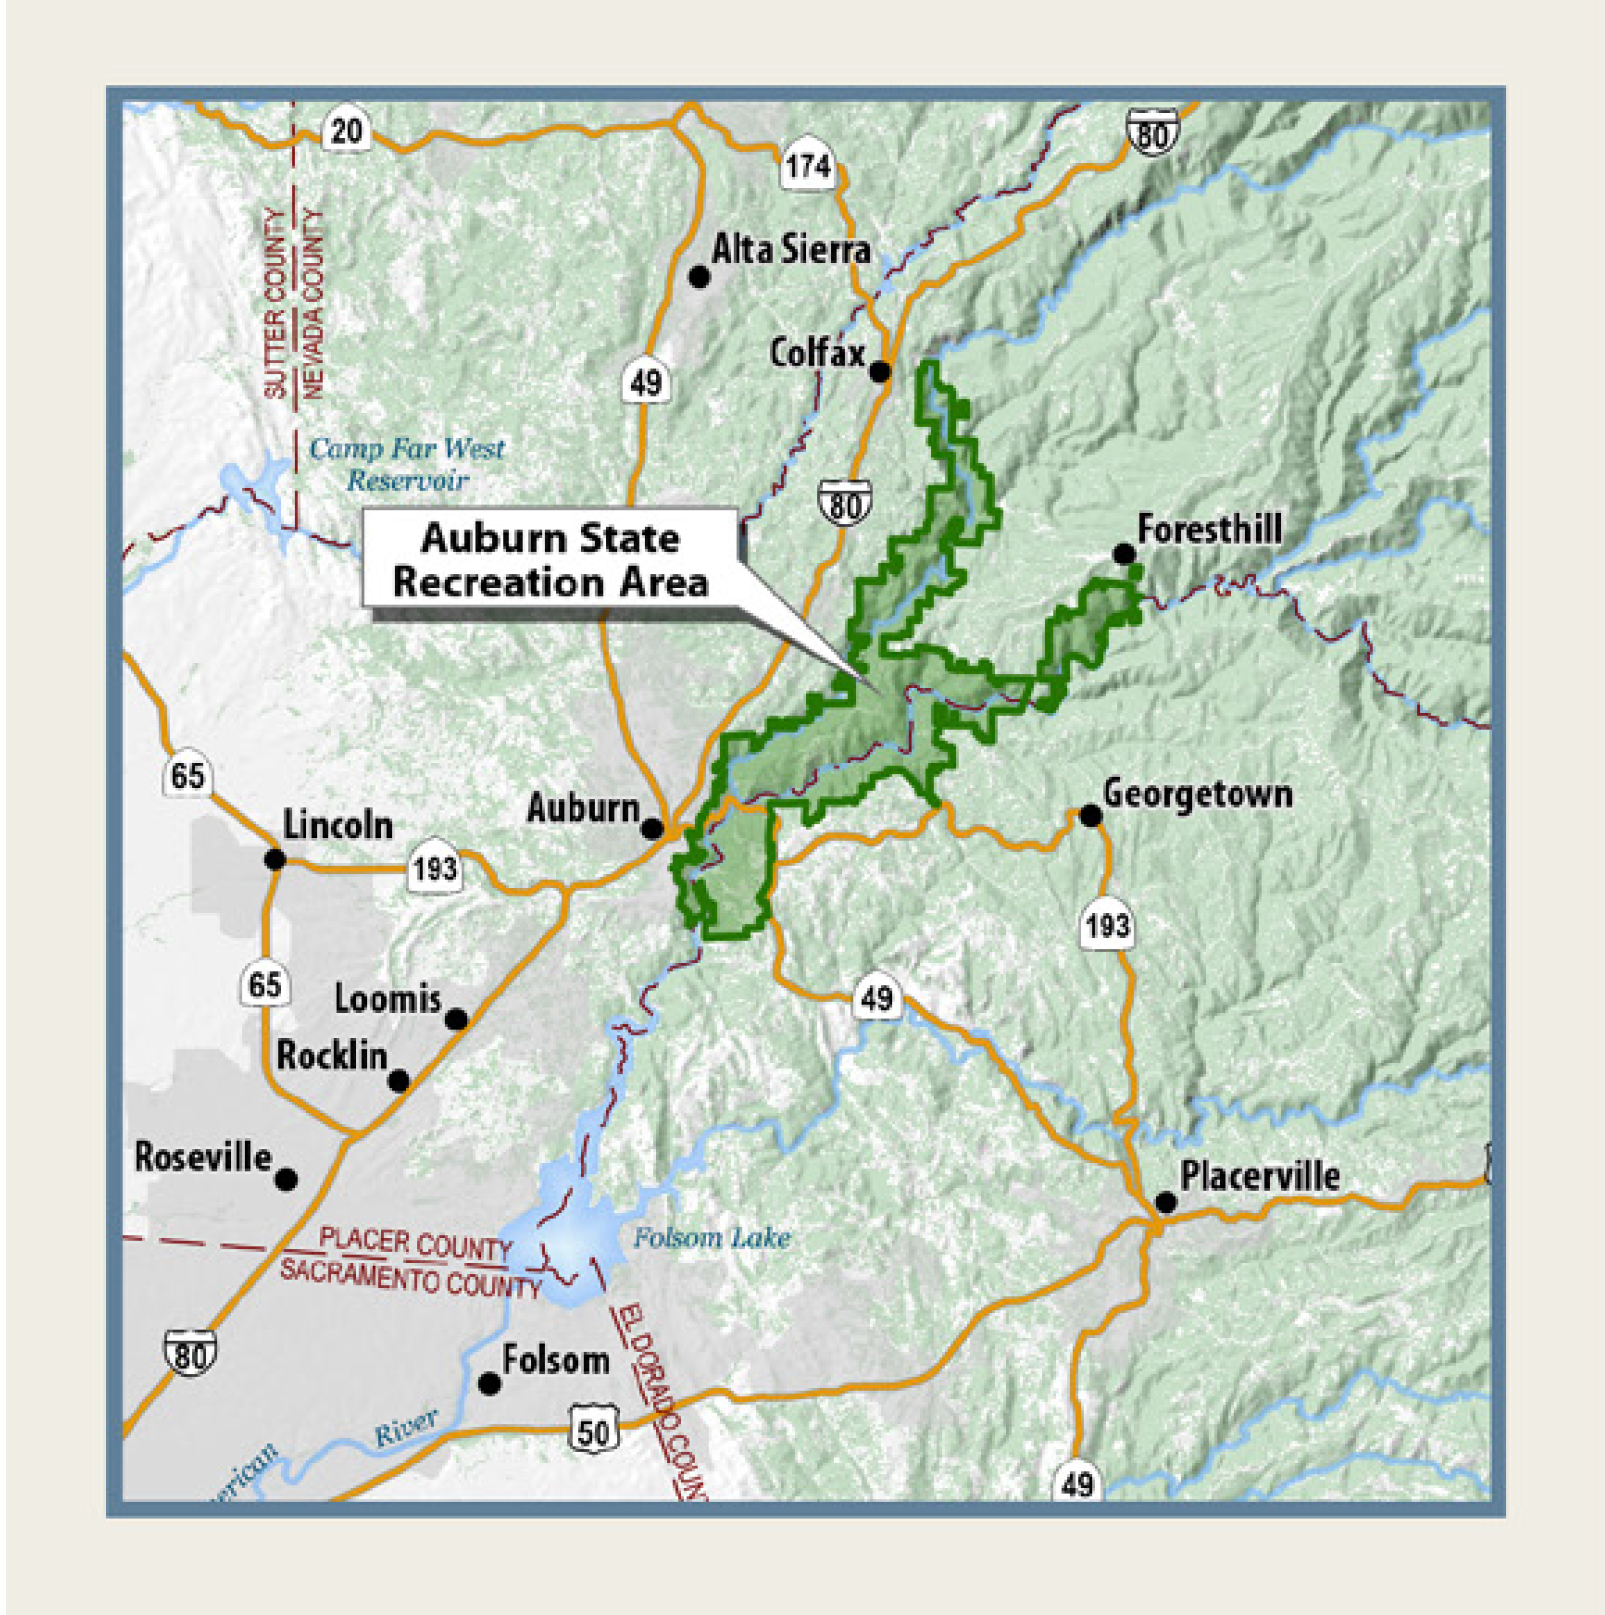 Auburn State Recreation Area General Plan/Resource Management Plan on